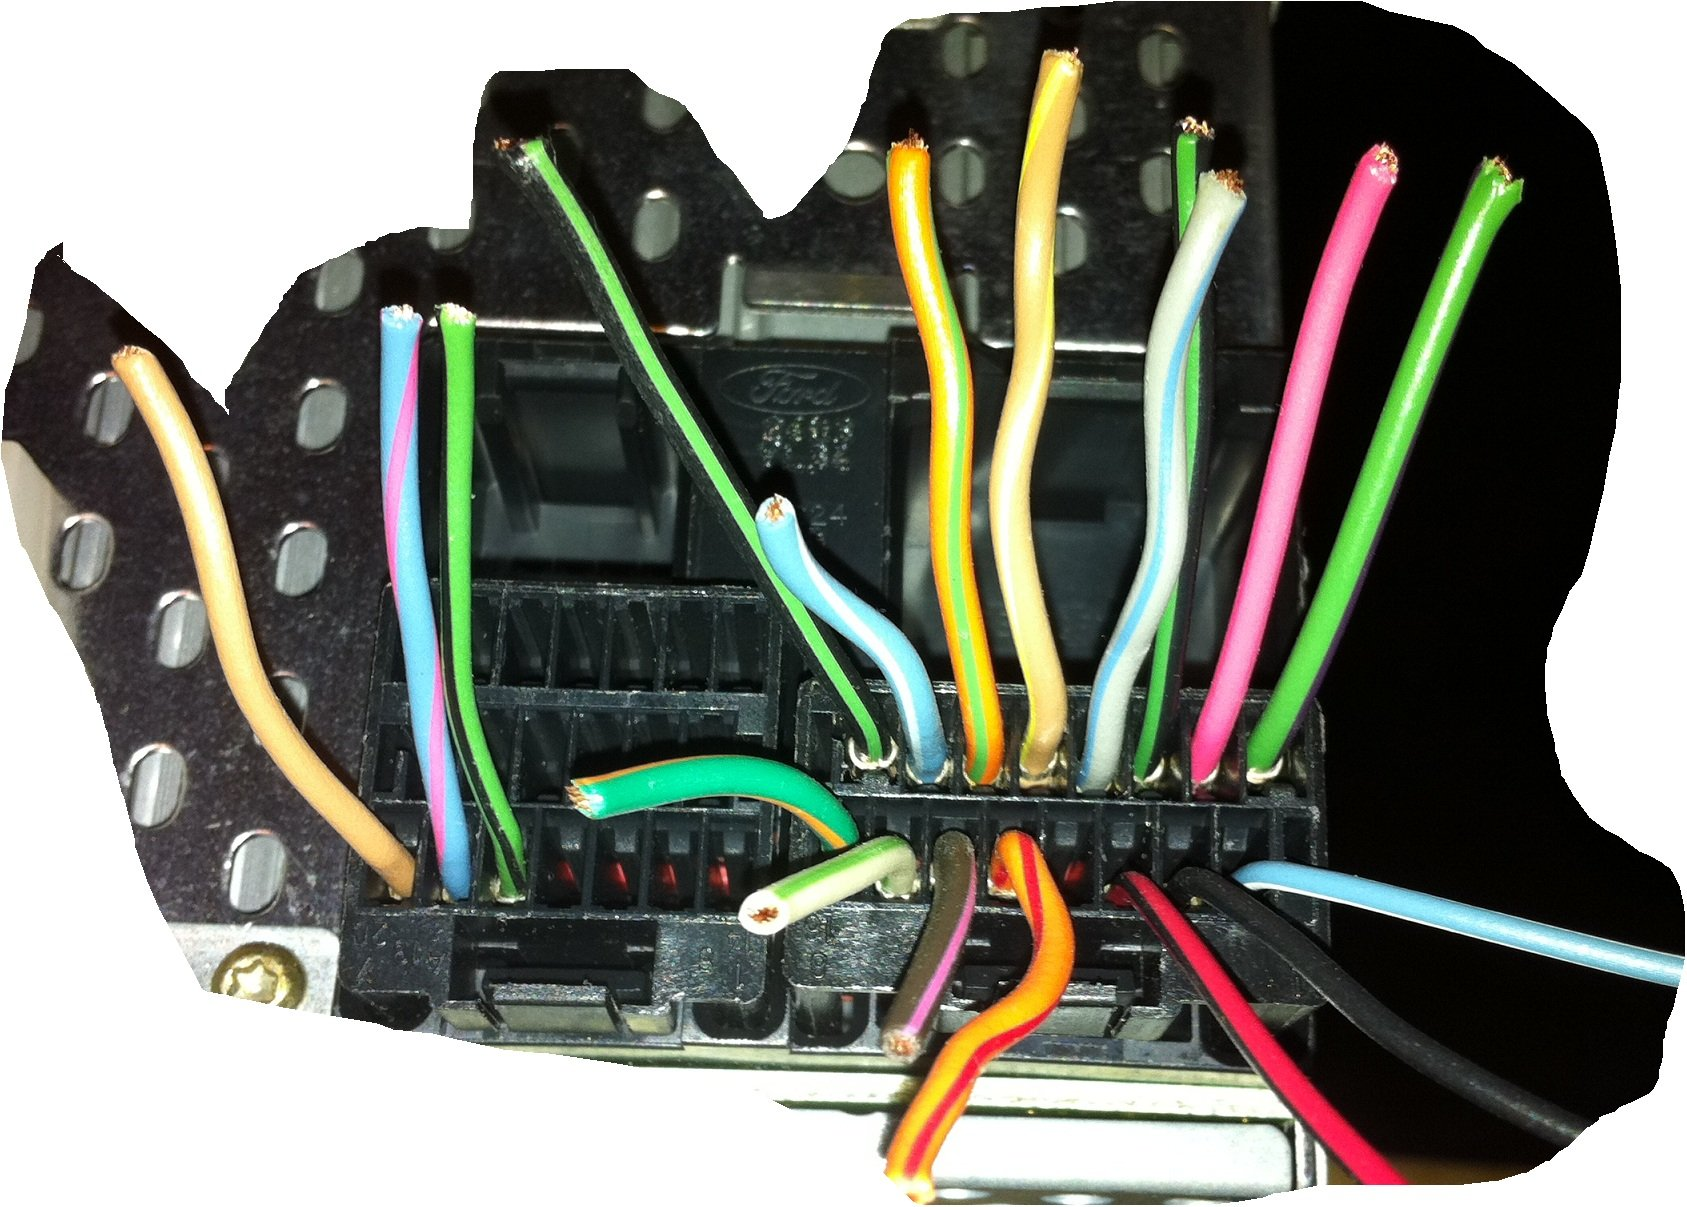 2011 06 24_023822_6 23 11_130 where can i find 2003 windstar radio color wire diagram most i've 2002 ford windstar radio wiring diagram at gsmx.co